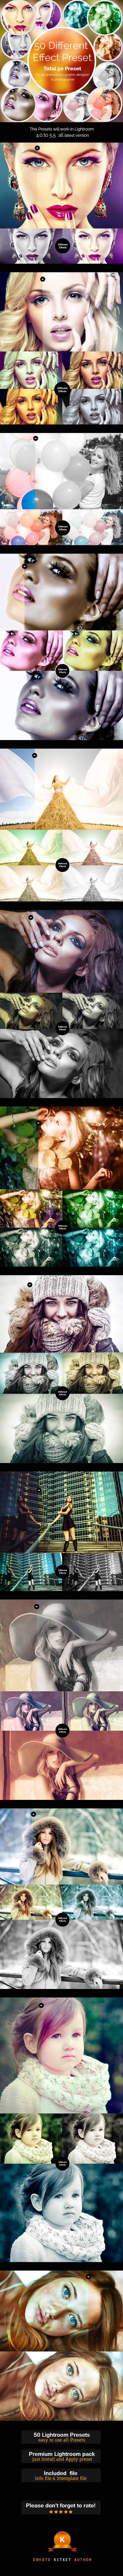 GraphicRiver 50 Different Effect Preset 11955897